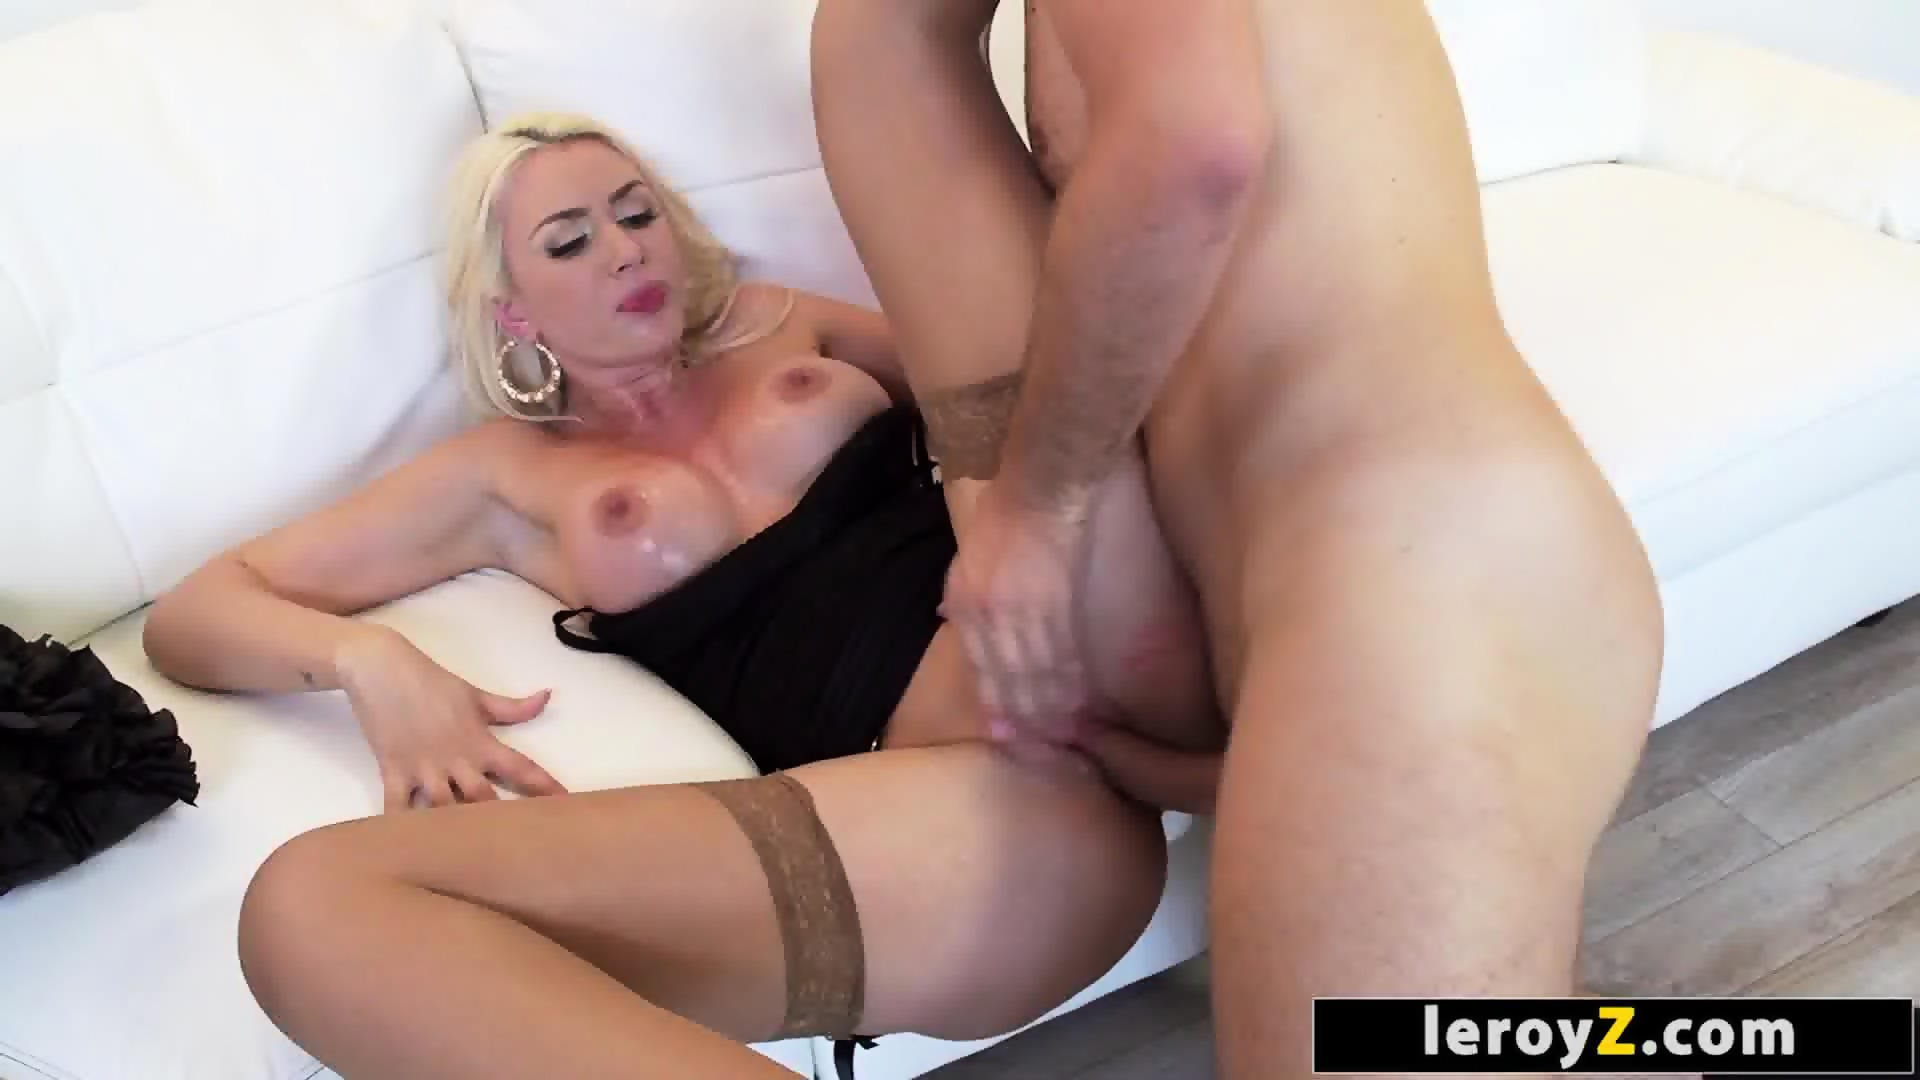 Cum in her mouth sex scene